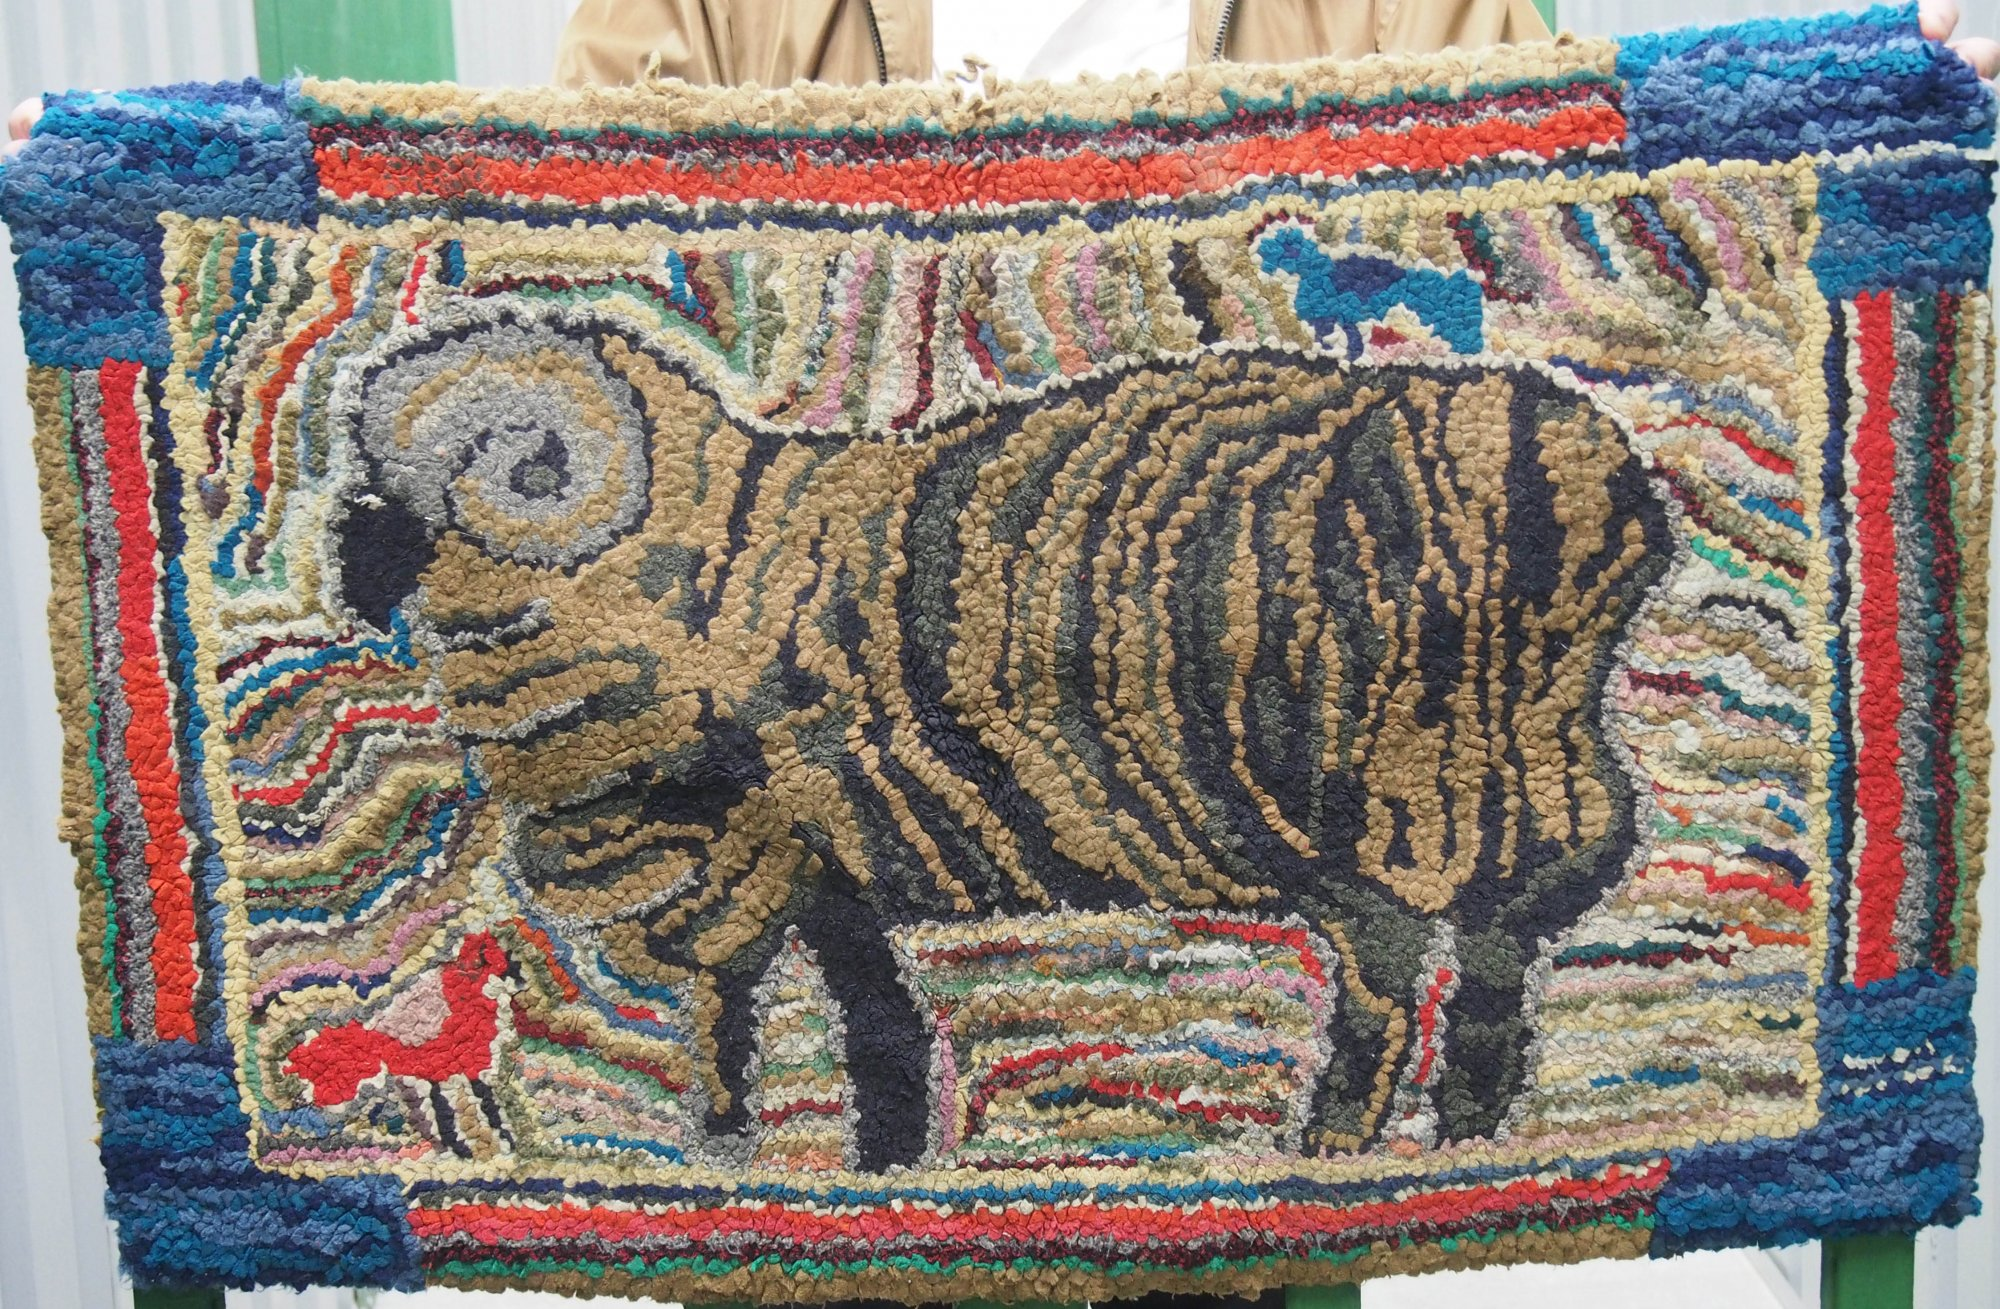 RAM ANTIQUE HOOKED RUG